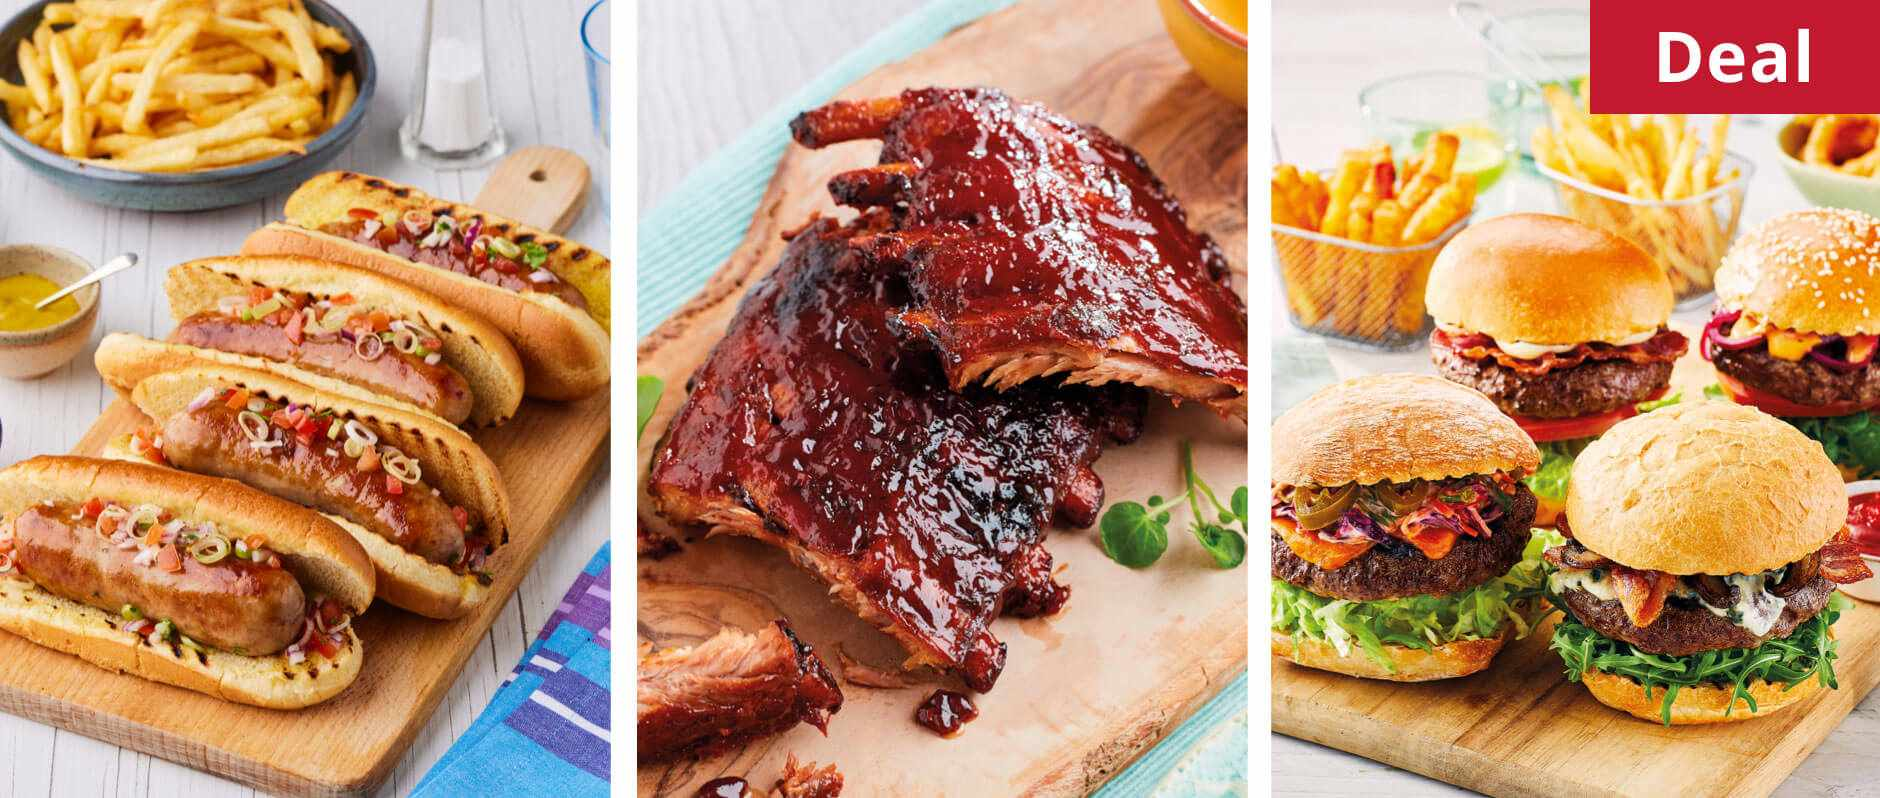 Hot dogs, BBQ ribs and burgers